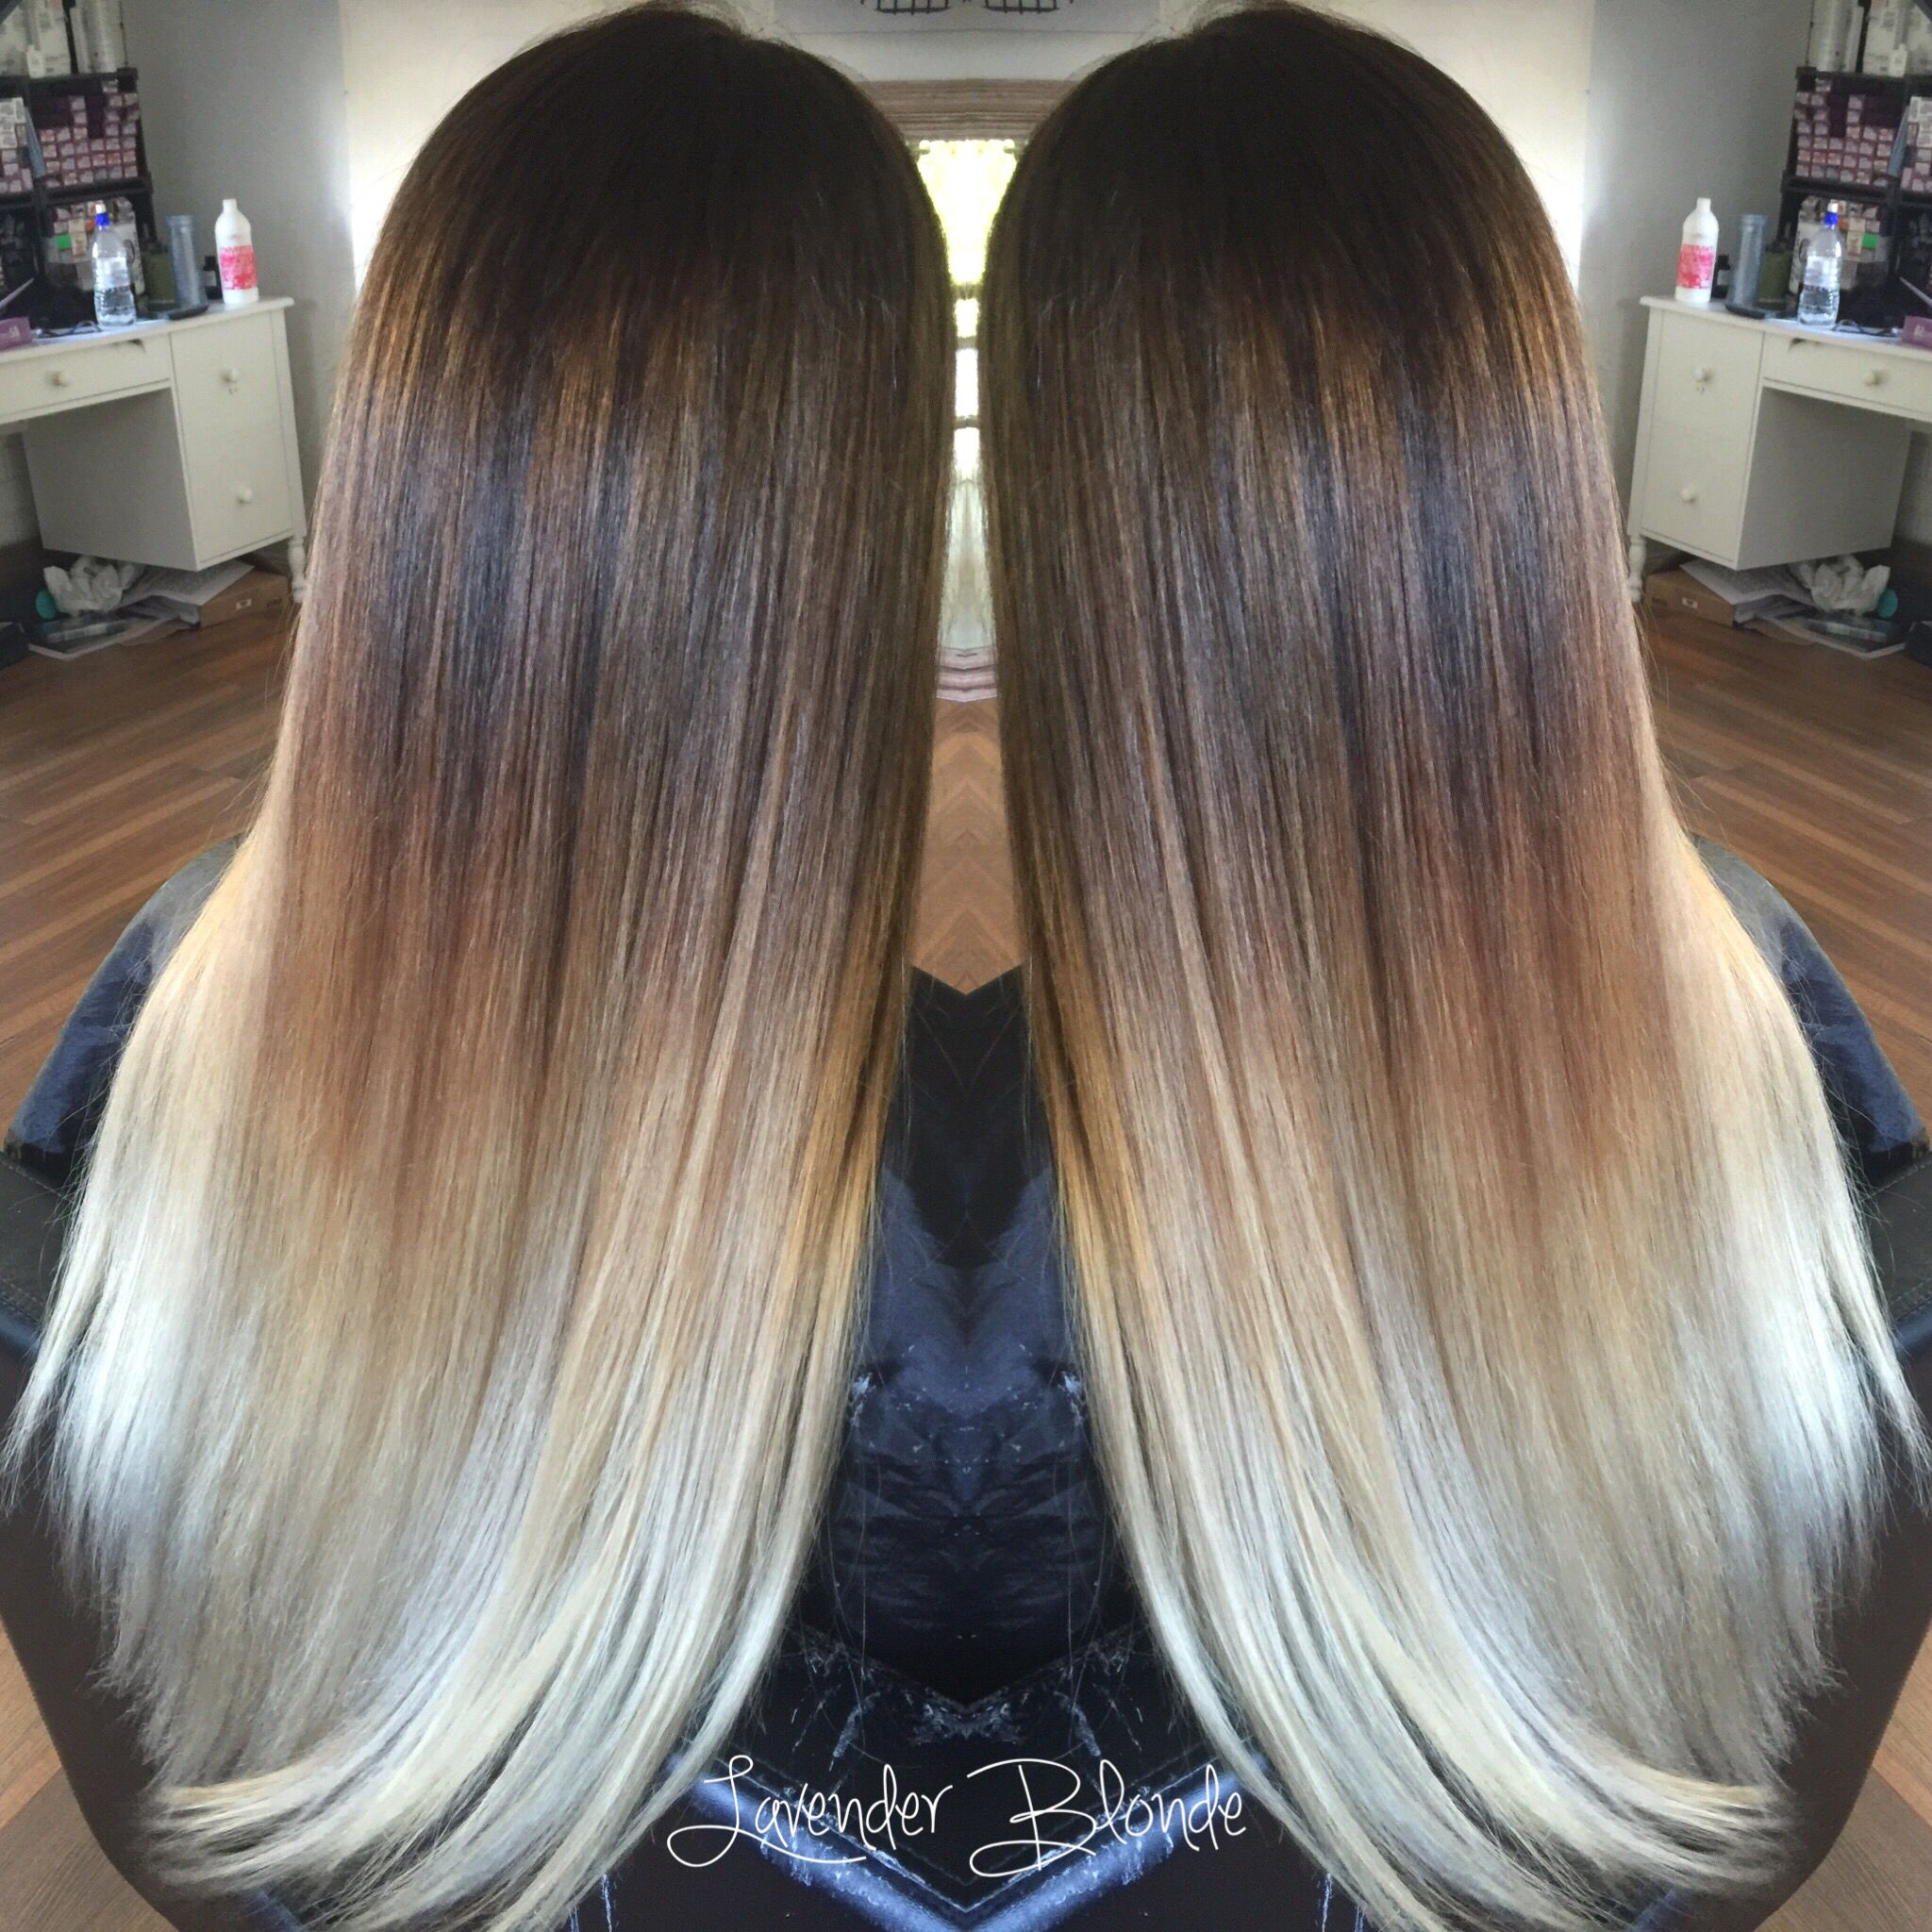 Black hair with blonde ends - Long Chocolate Mahogany Ombre To Platinum Blonde Ends Hair Crush